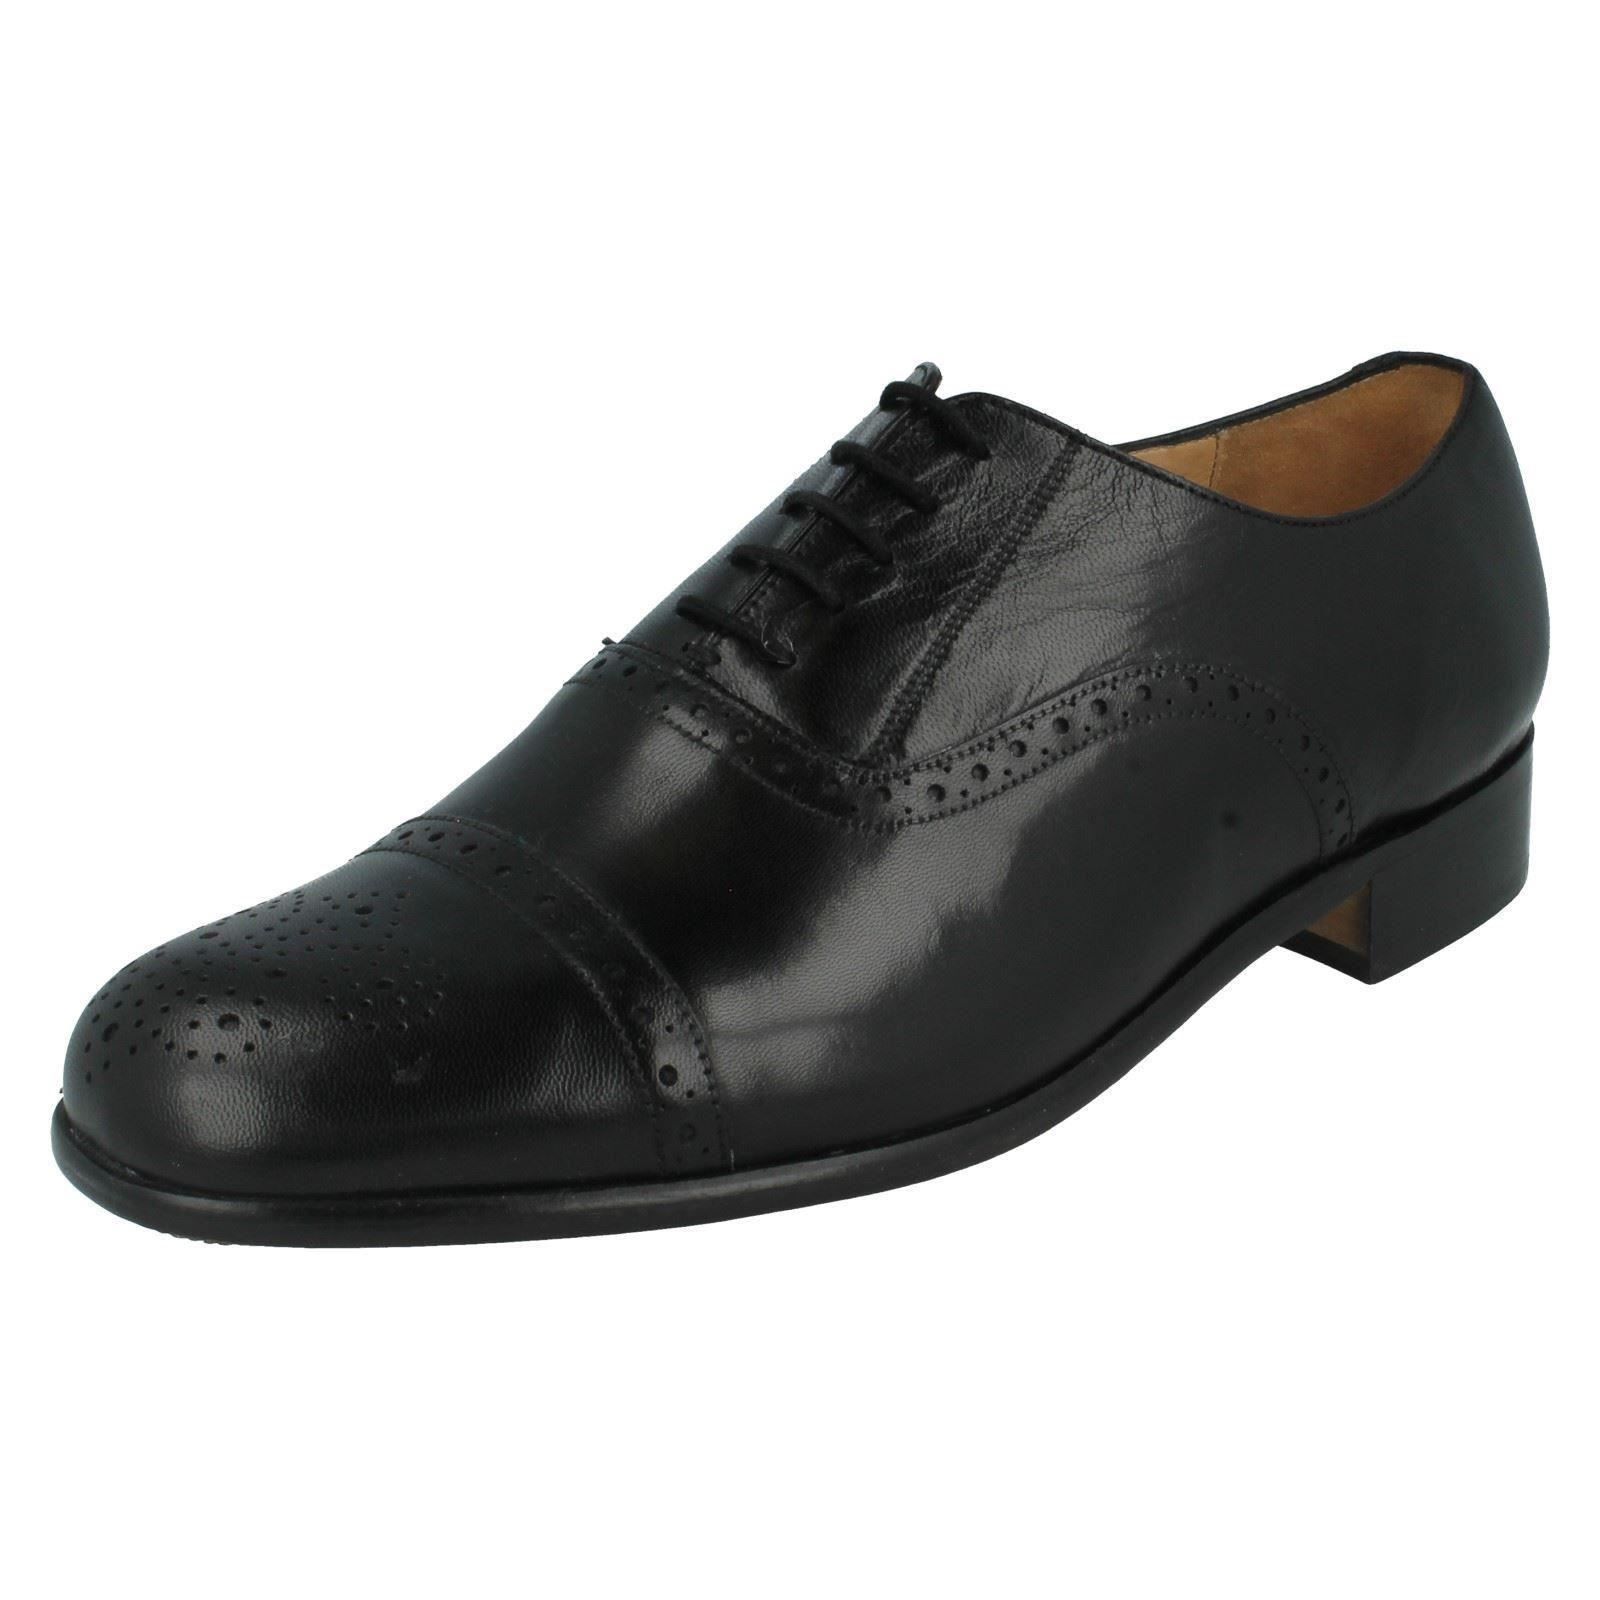 Homme Grenson Formelle Chaussures Chaussures Formelle Style-St. pancras 35021-01 9547a5